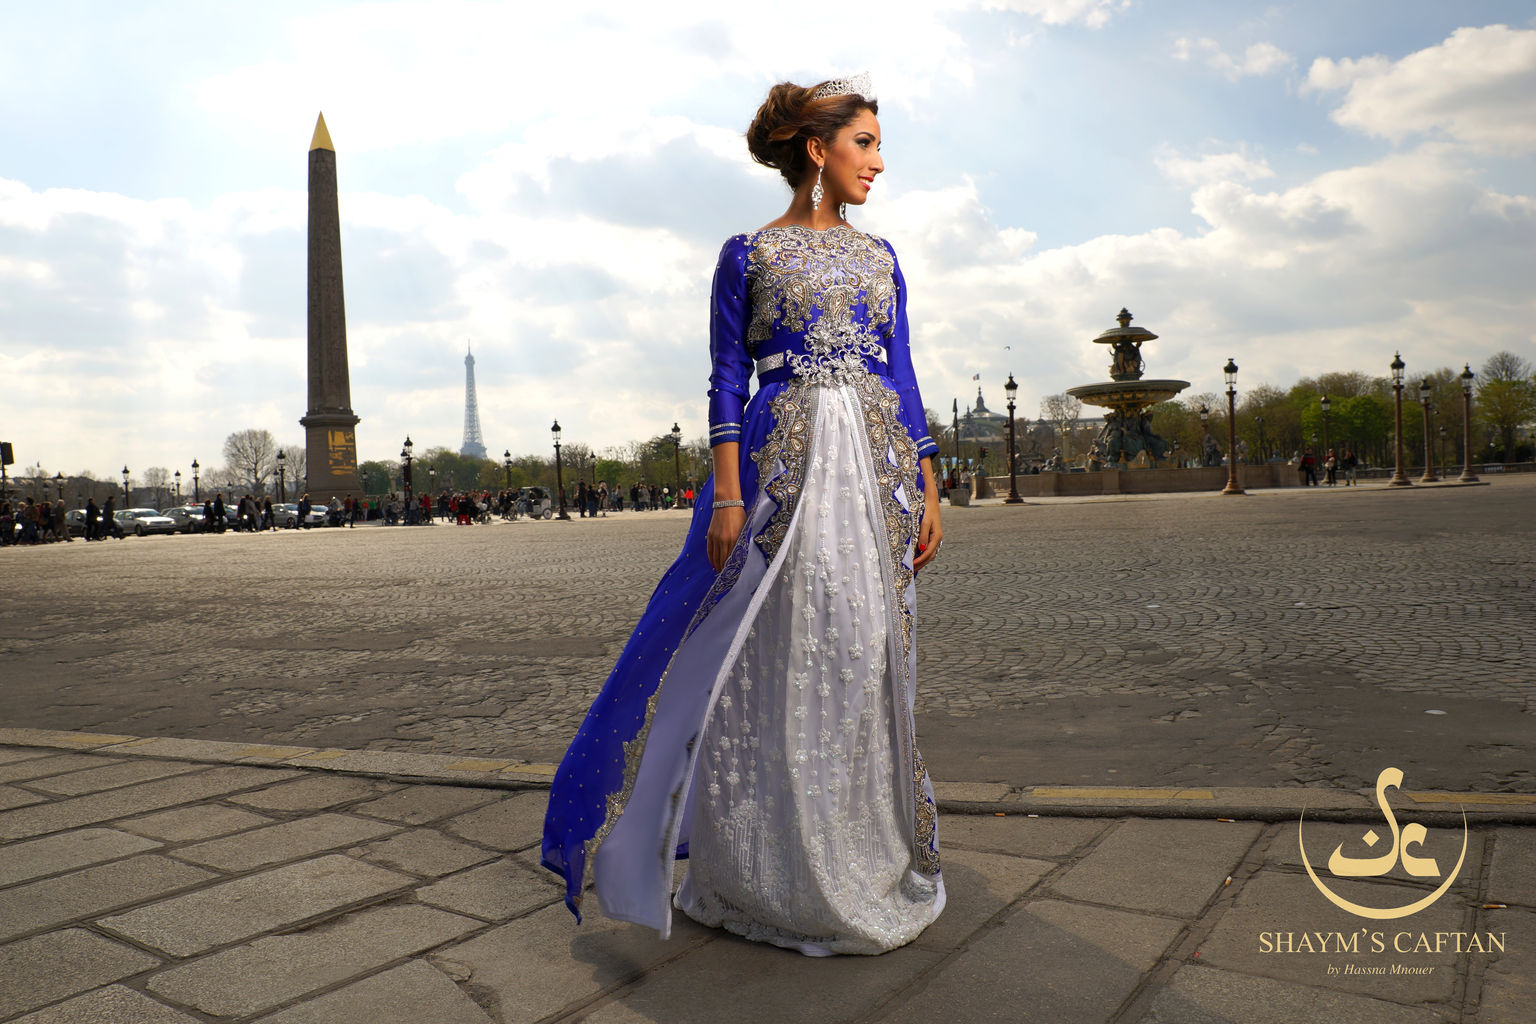 Shayms caftan location caftan haute couture for Couture france